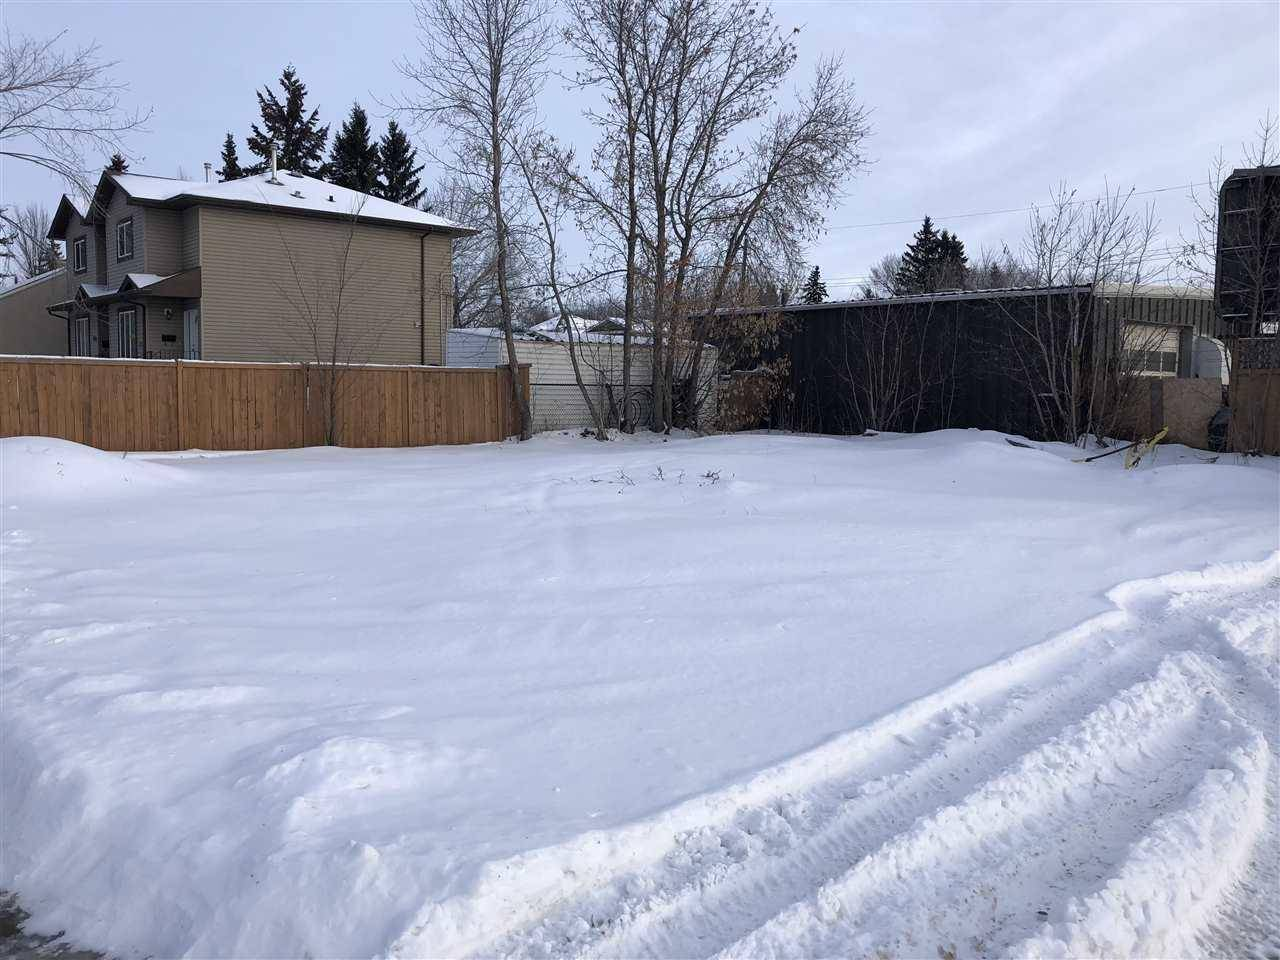 Residential property for sale at 12705 118 St Nw Edmonton Alberta - MLS: E4169082